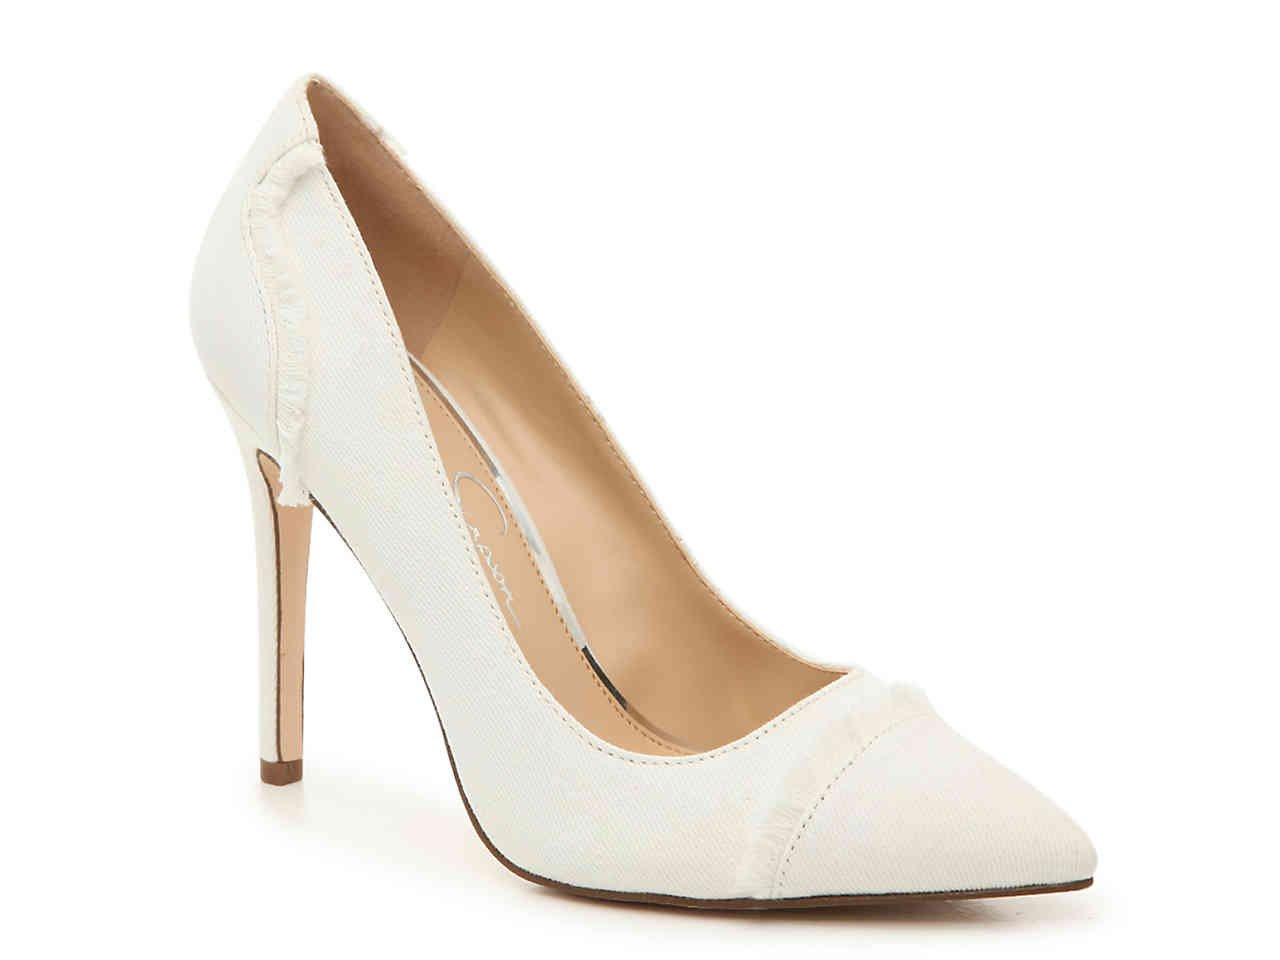 Jessica Simpson Pralista Pump Women's Shoes | DSW